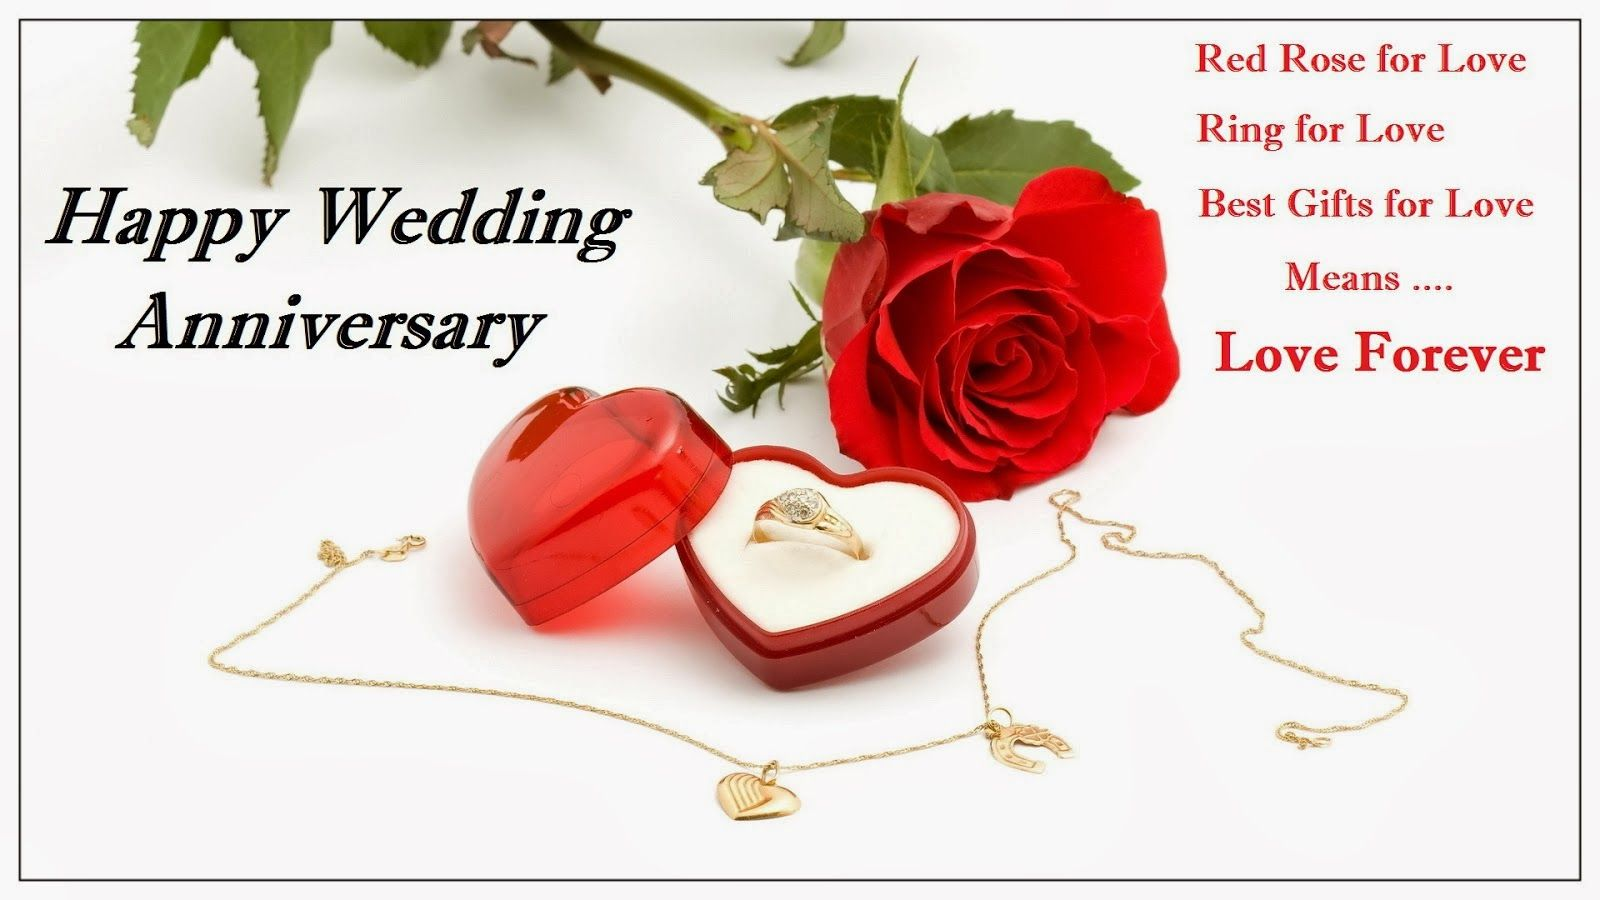 Sweet happy 10th year wedding anniversary wishes, message